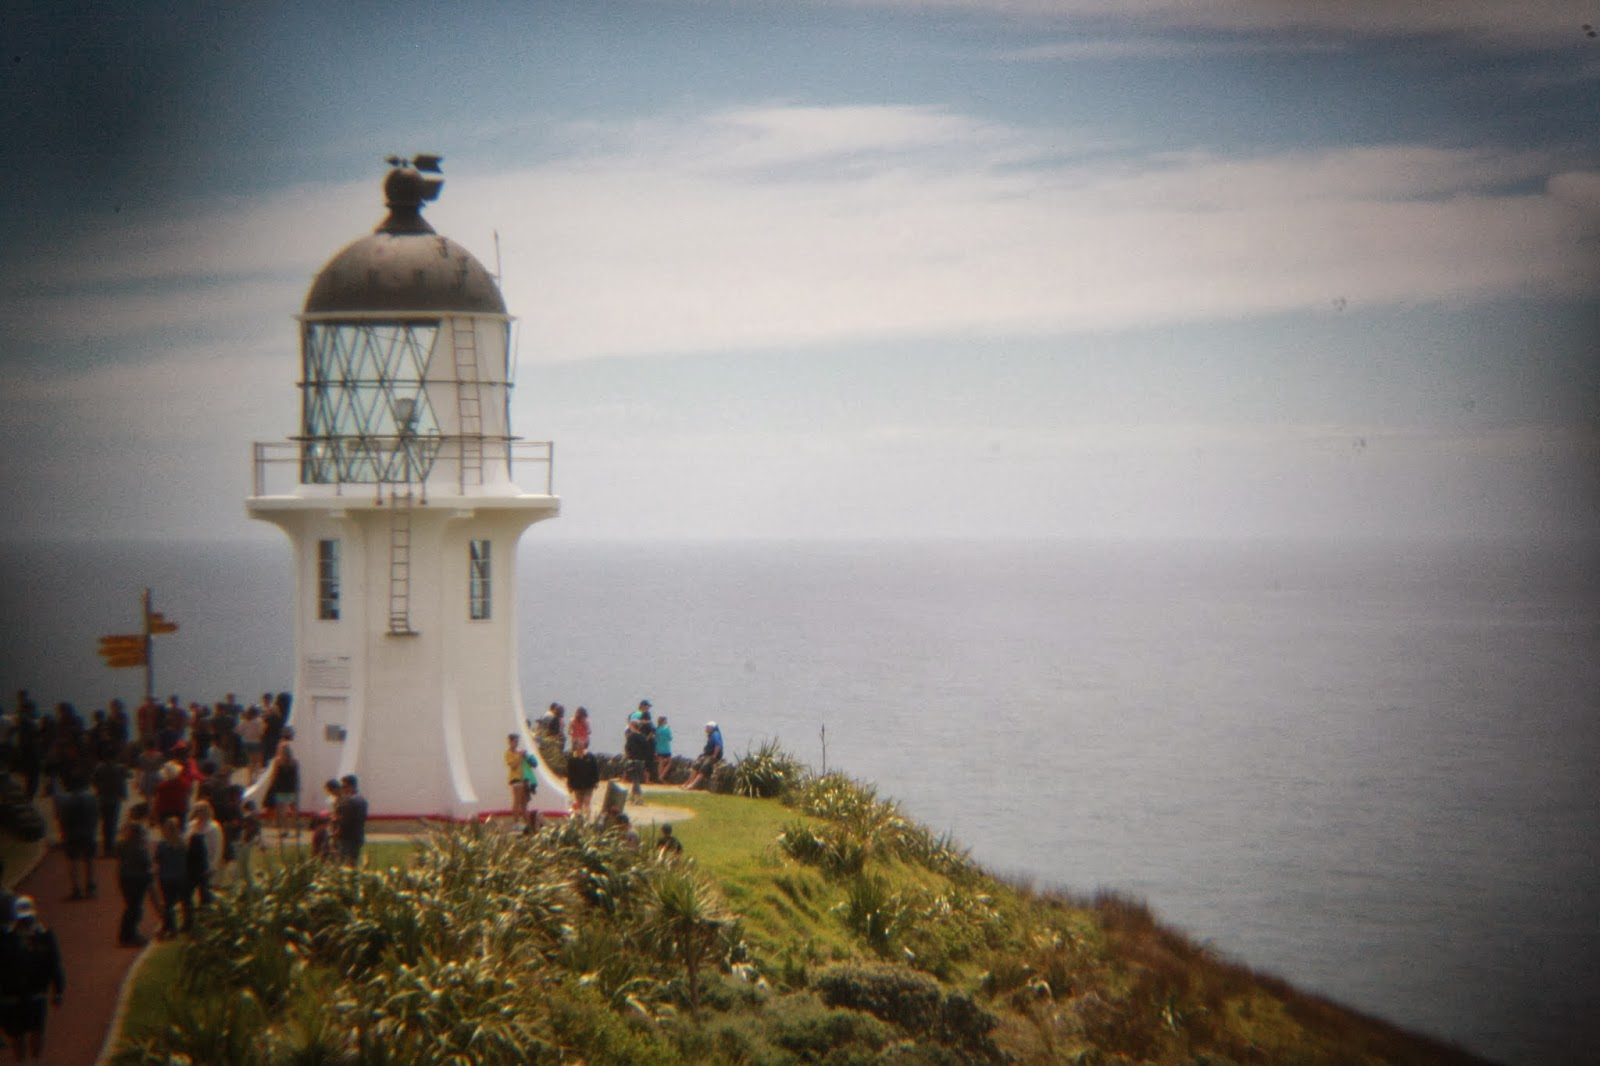 That's the Cape Reinga light house.